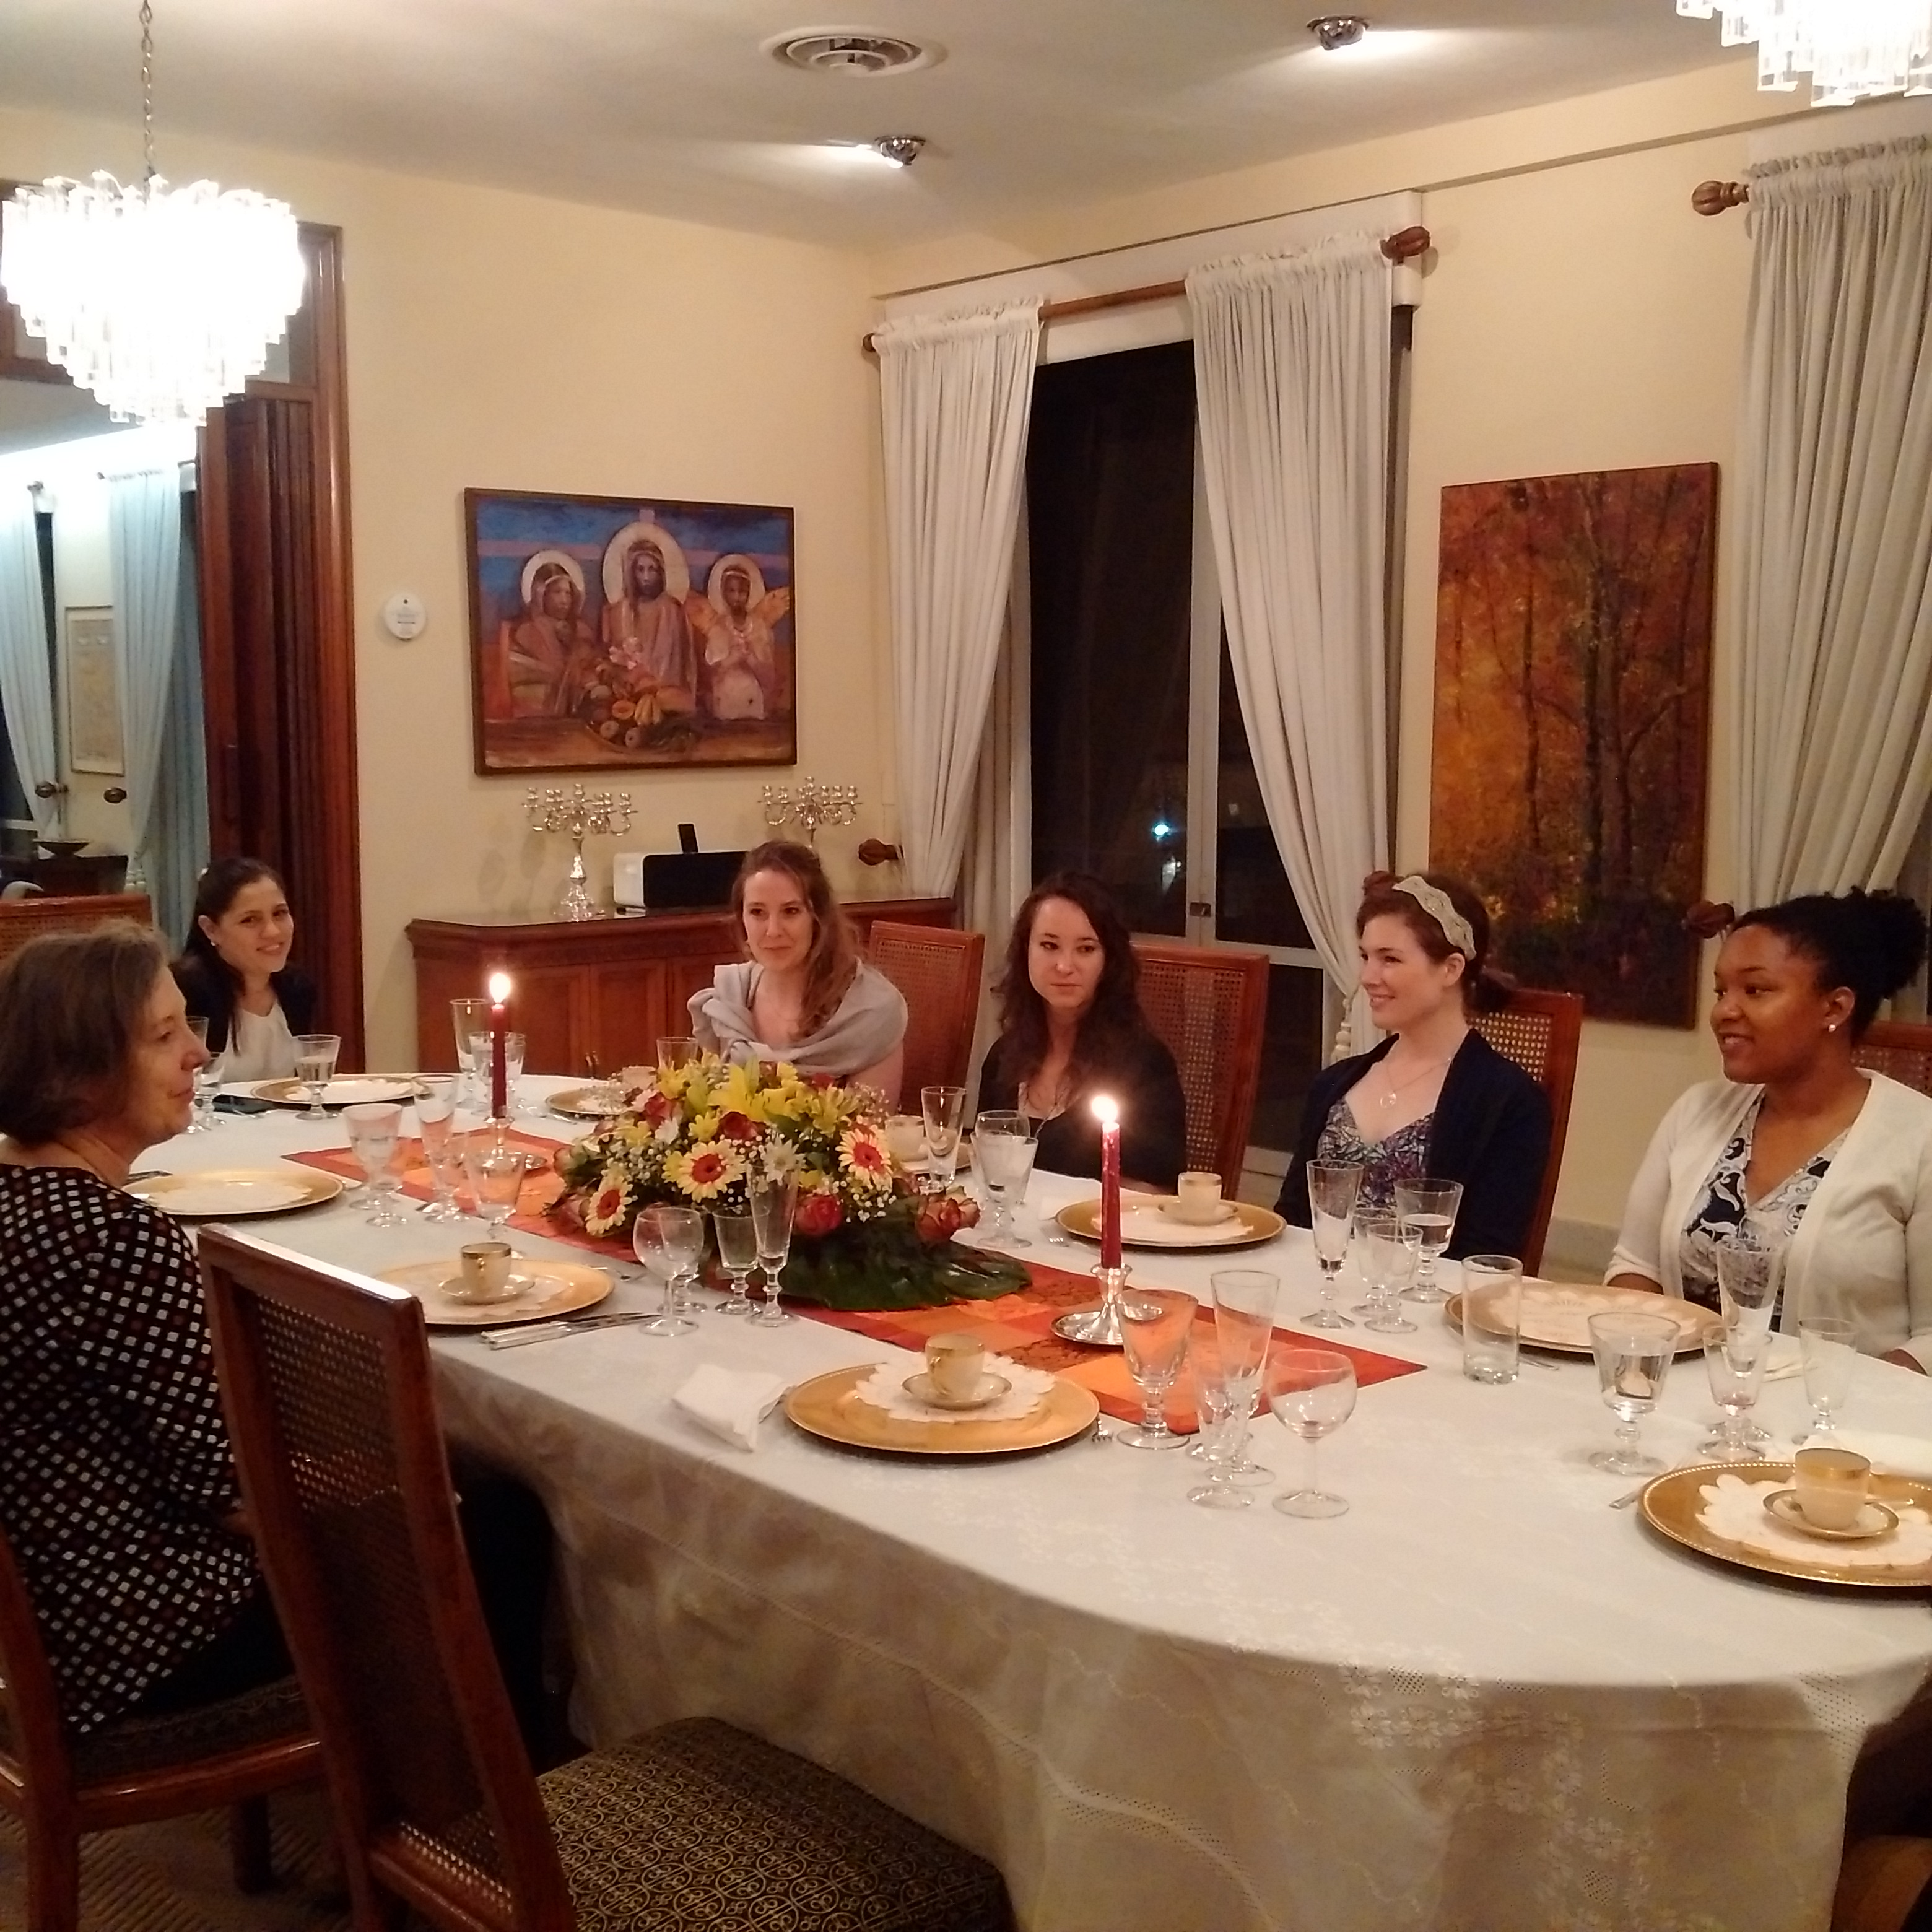 WVU medical students having dinner at the US Embassy in Paraguay